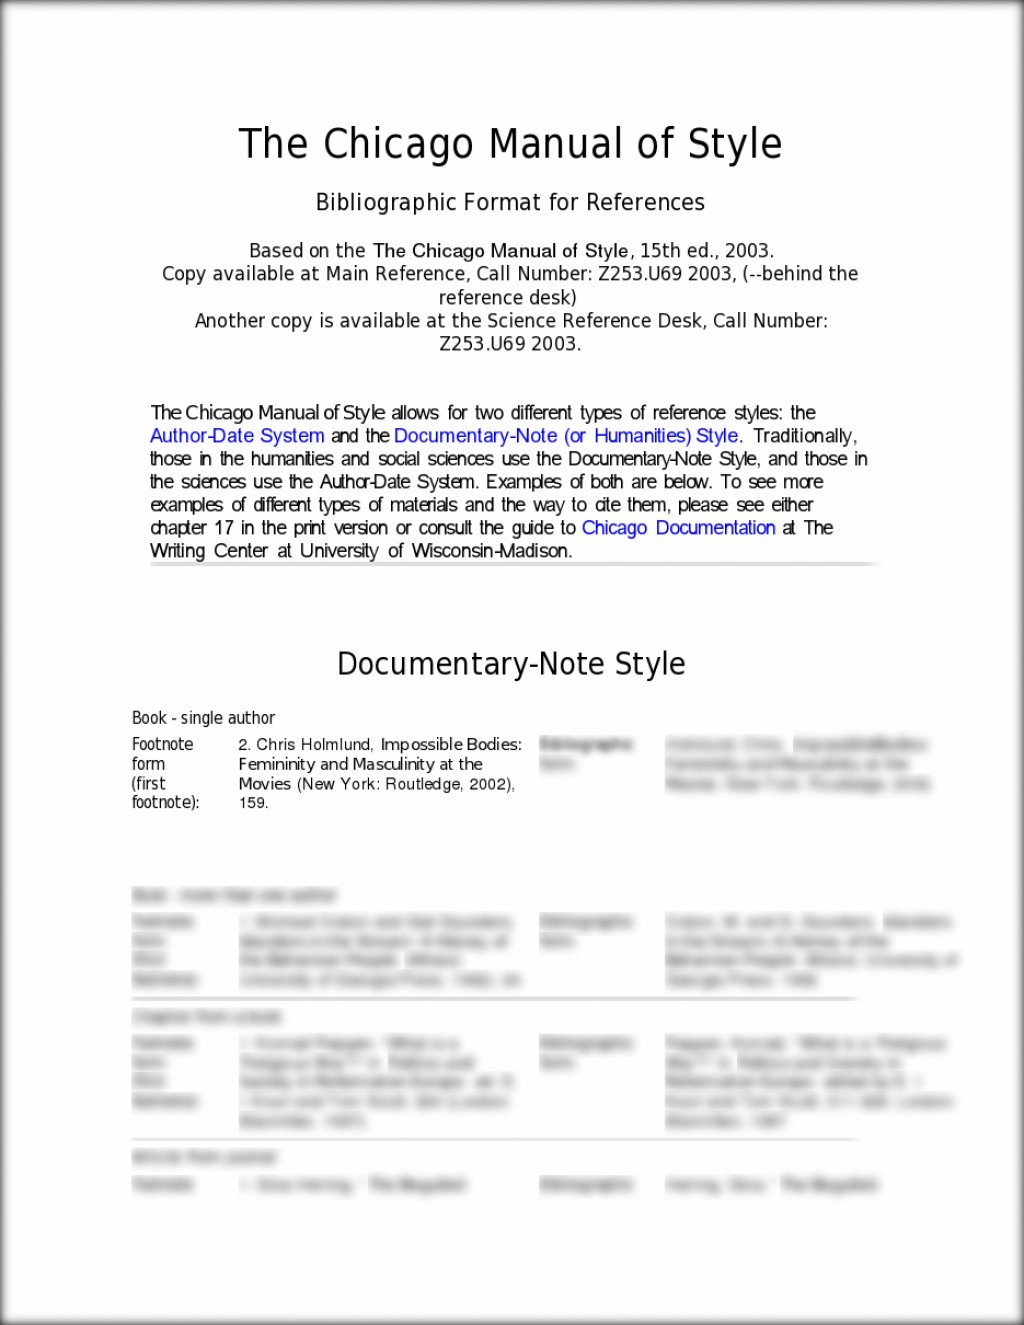 003 Chicago Manual Of Style Research Paper Example Essay L Wonderful Sample Large